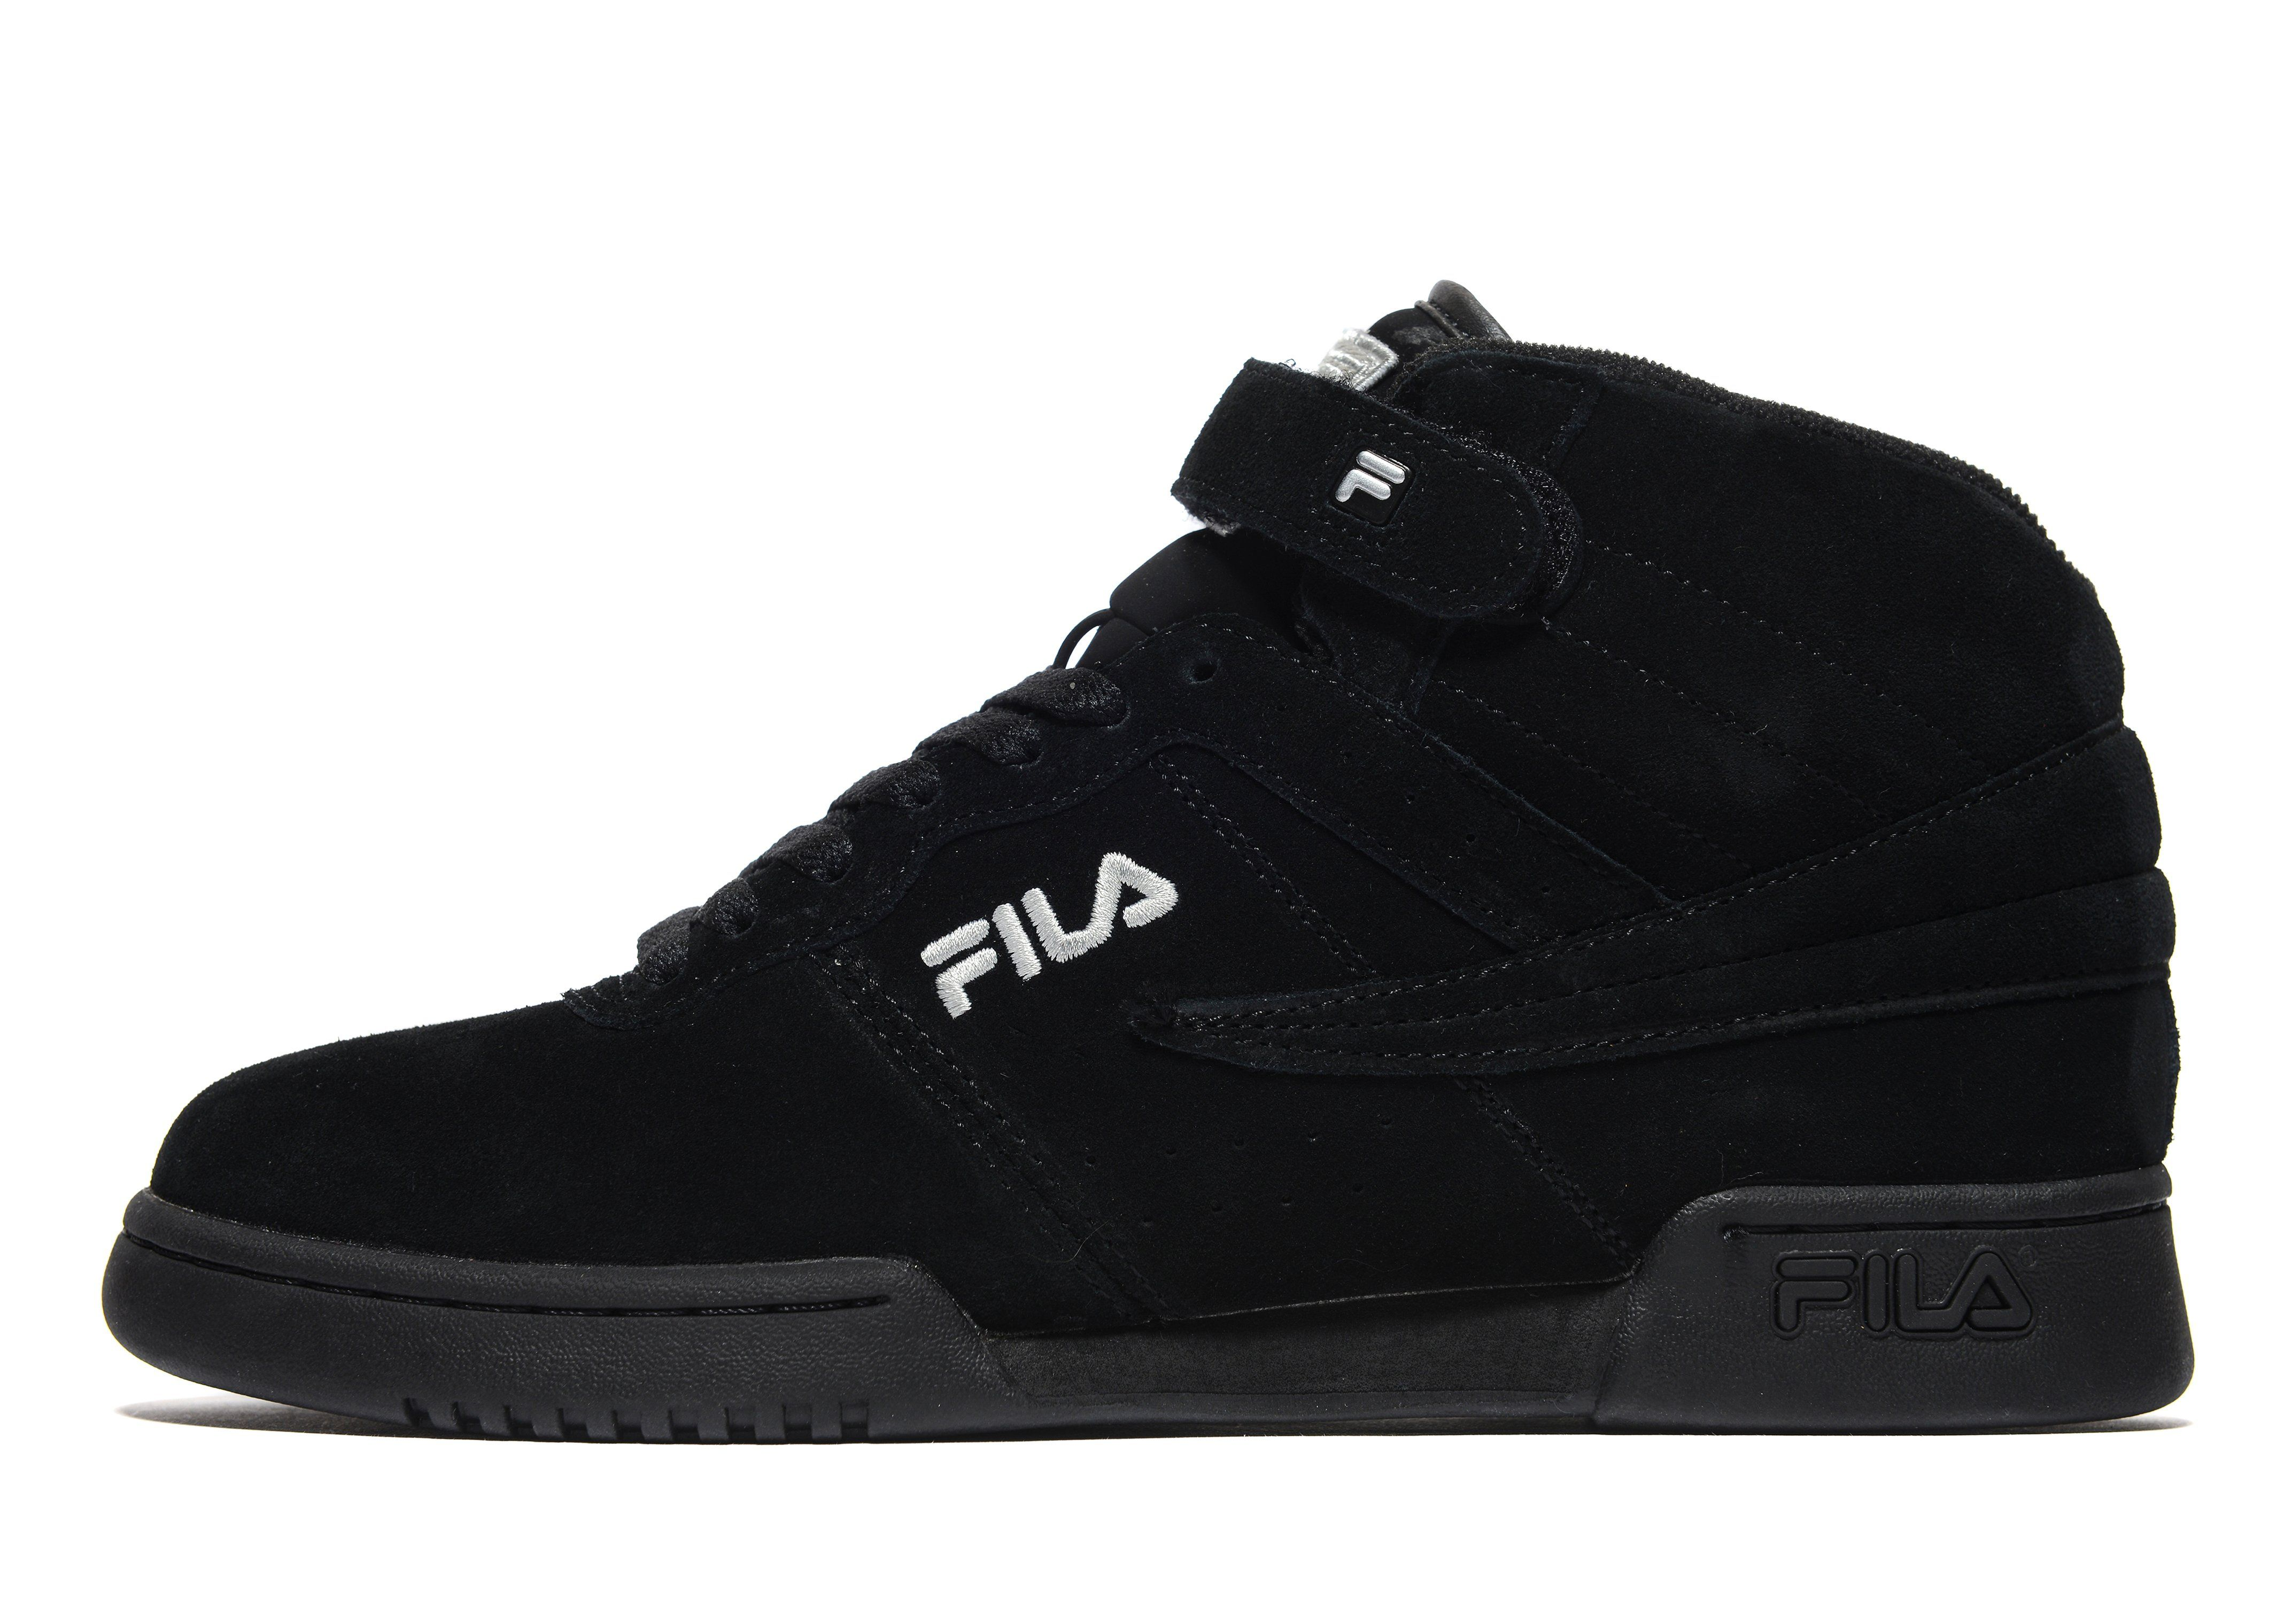 Fila Prominence Trainers Review